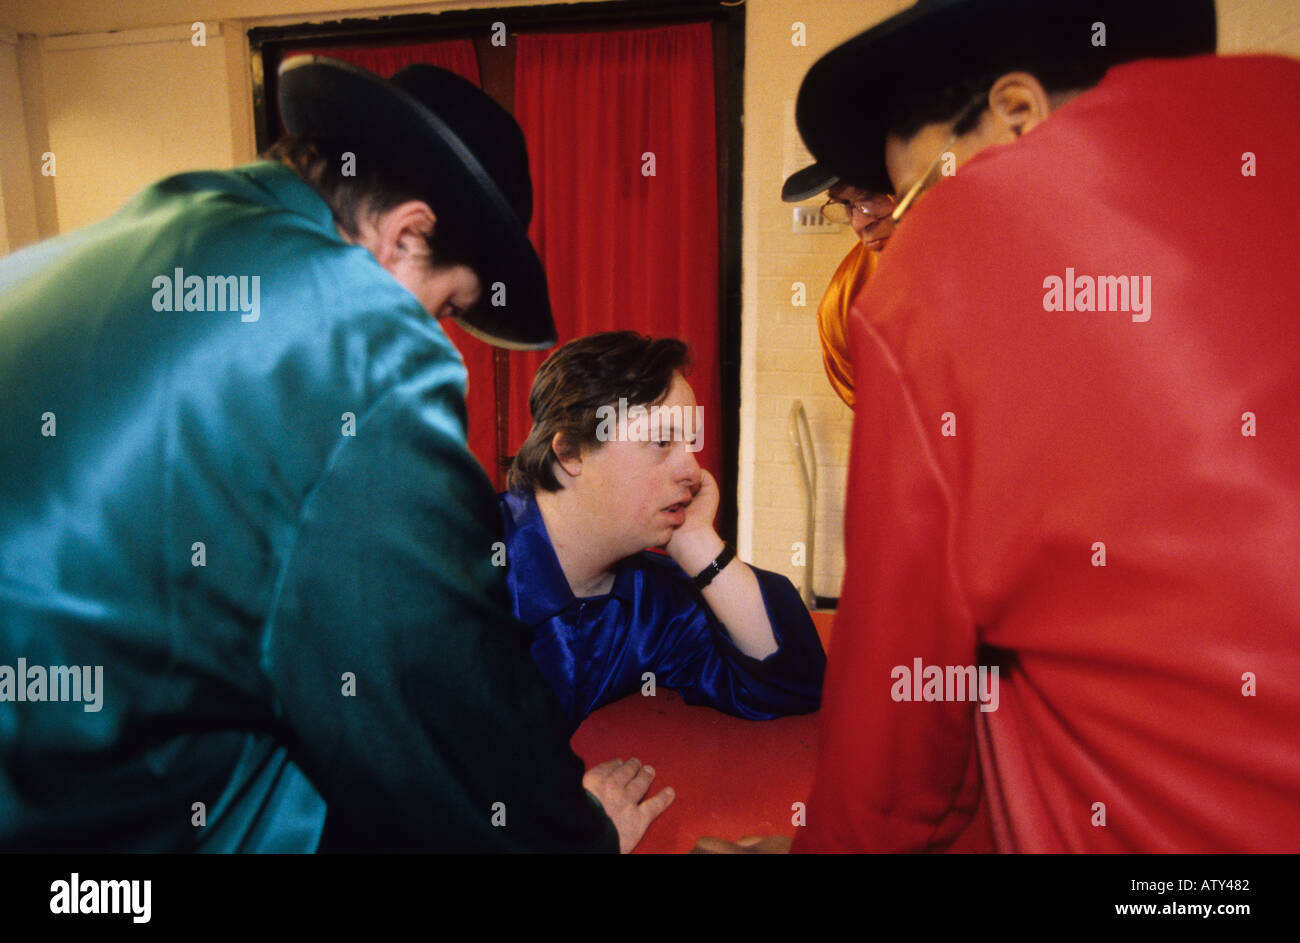 Theatre group rehearsing a play about bullying disabled people UK - Stock Image